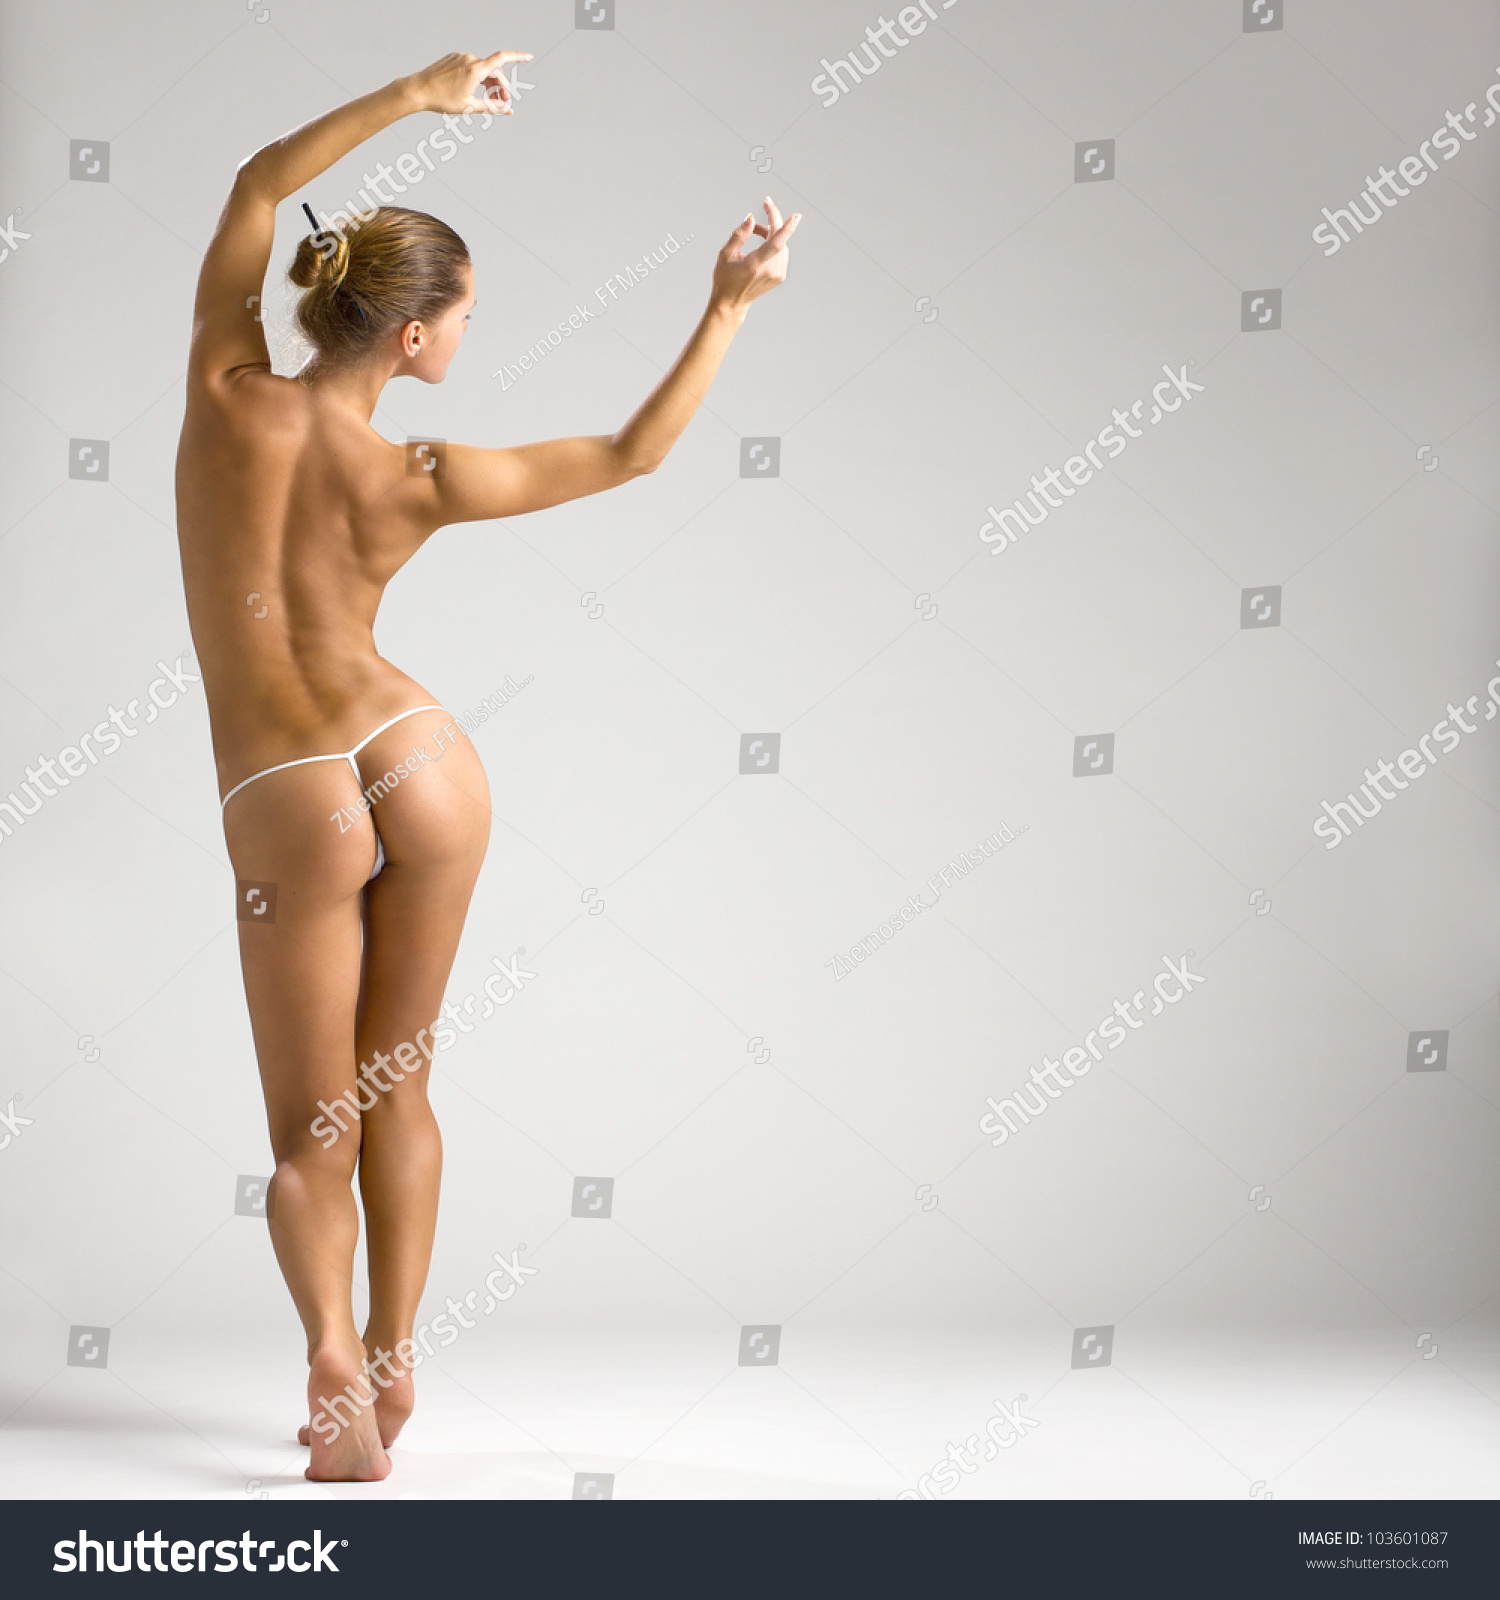 stock photo amazed young naked woman standing